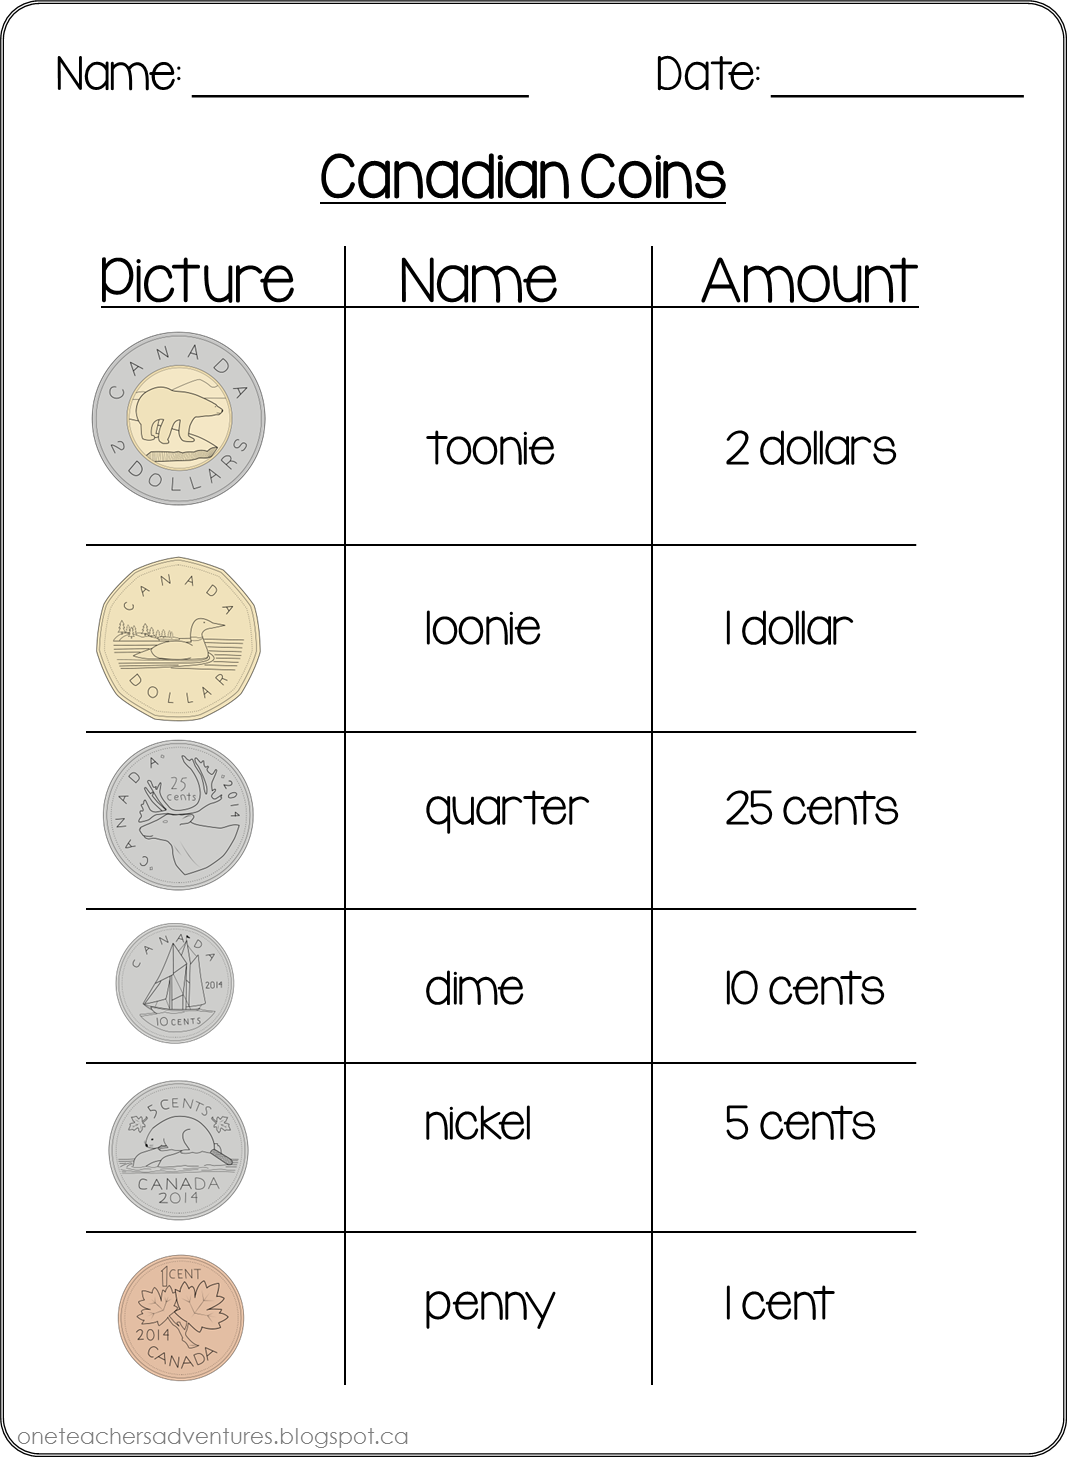 FREE Canadian Money (Coins) Practice Sheets | School activities ...